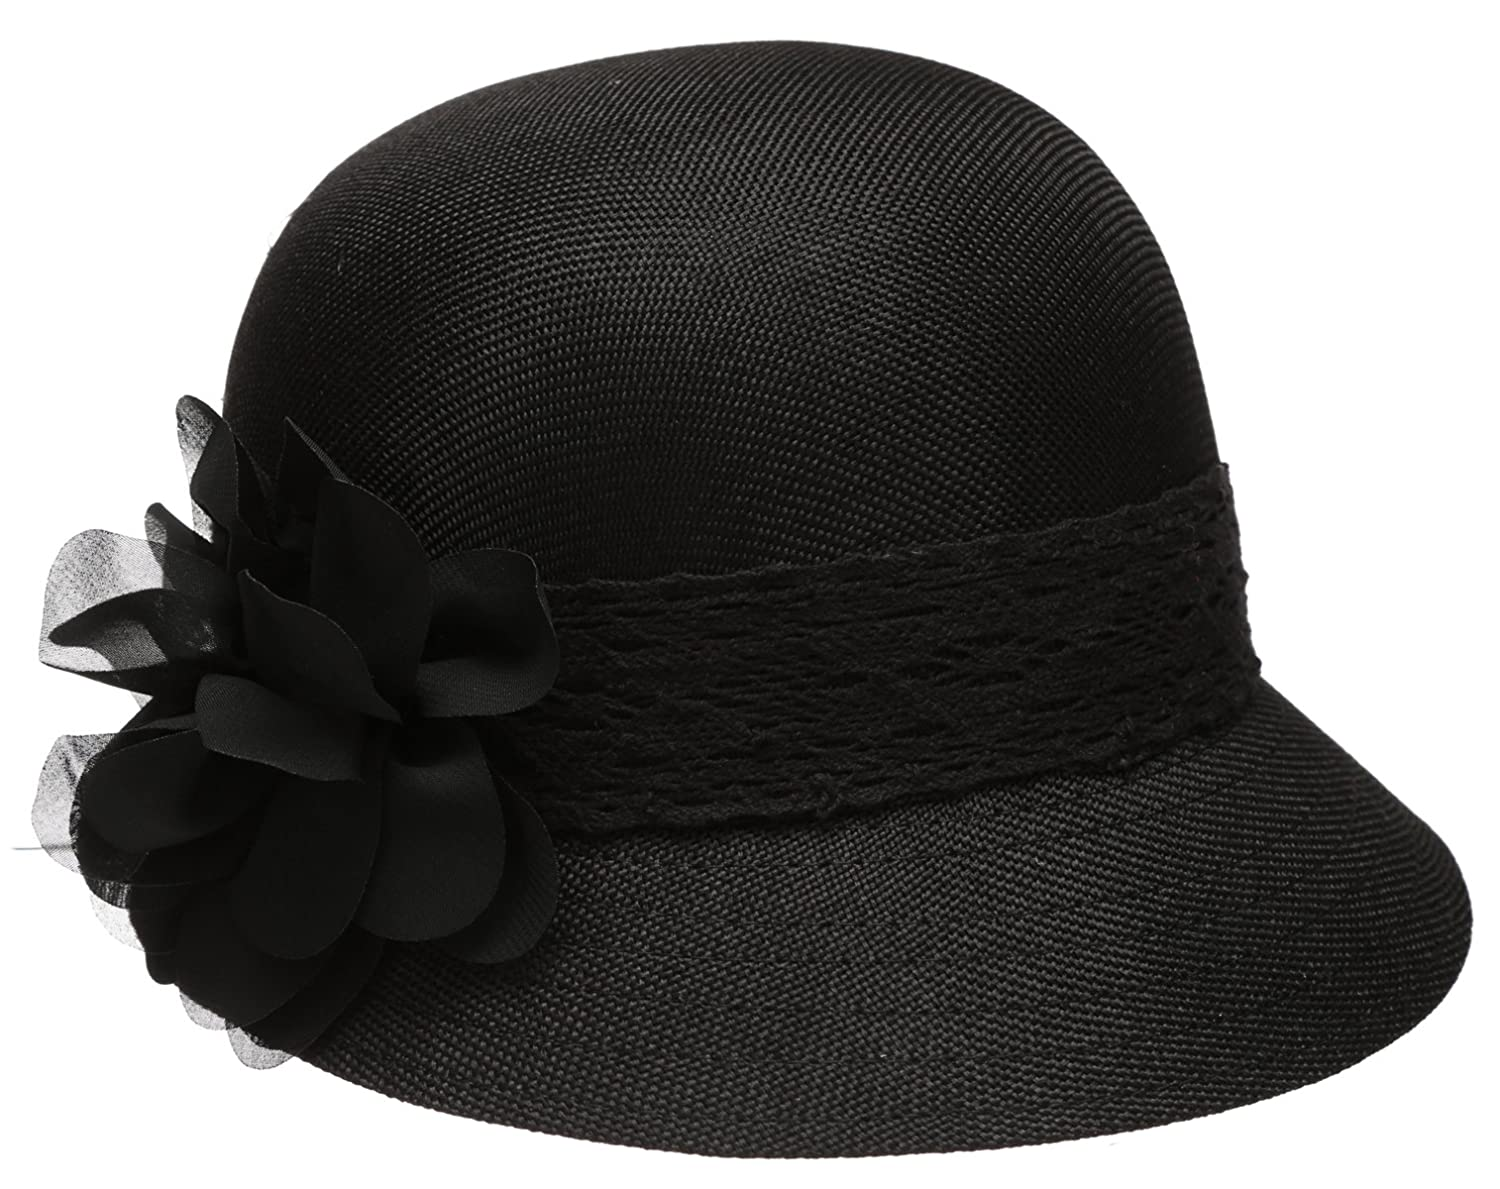 Epoch Women s Gatsby Linen Cloche Hat With Lace Band and Flower - Black at  Amazon Women s Clothing store  35f7d1d2c35